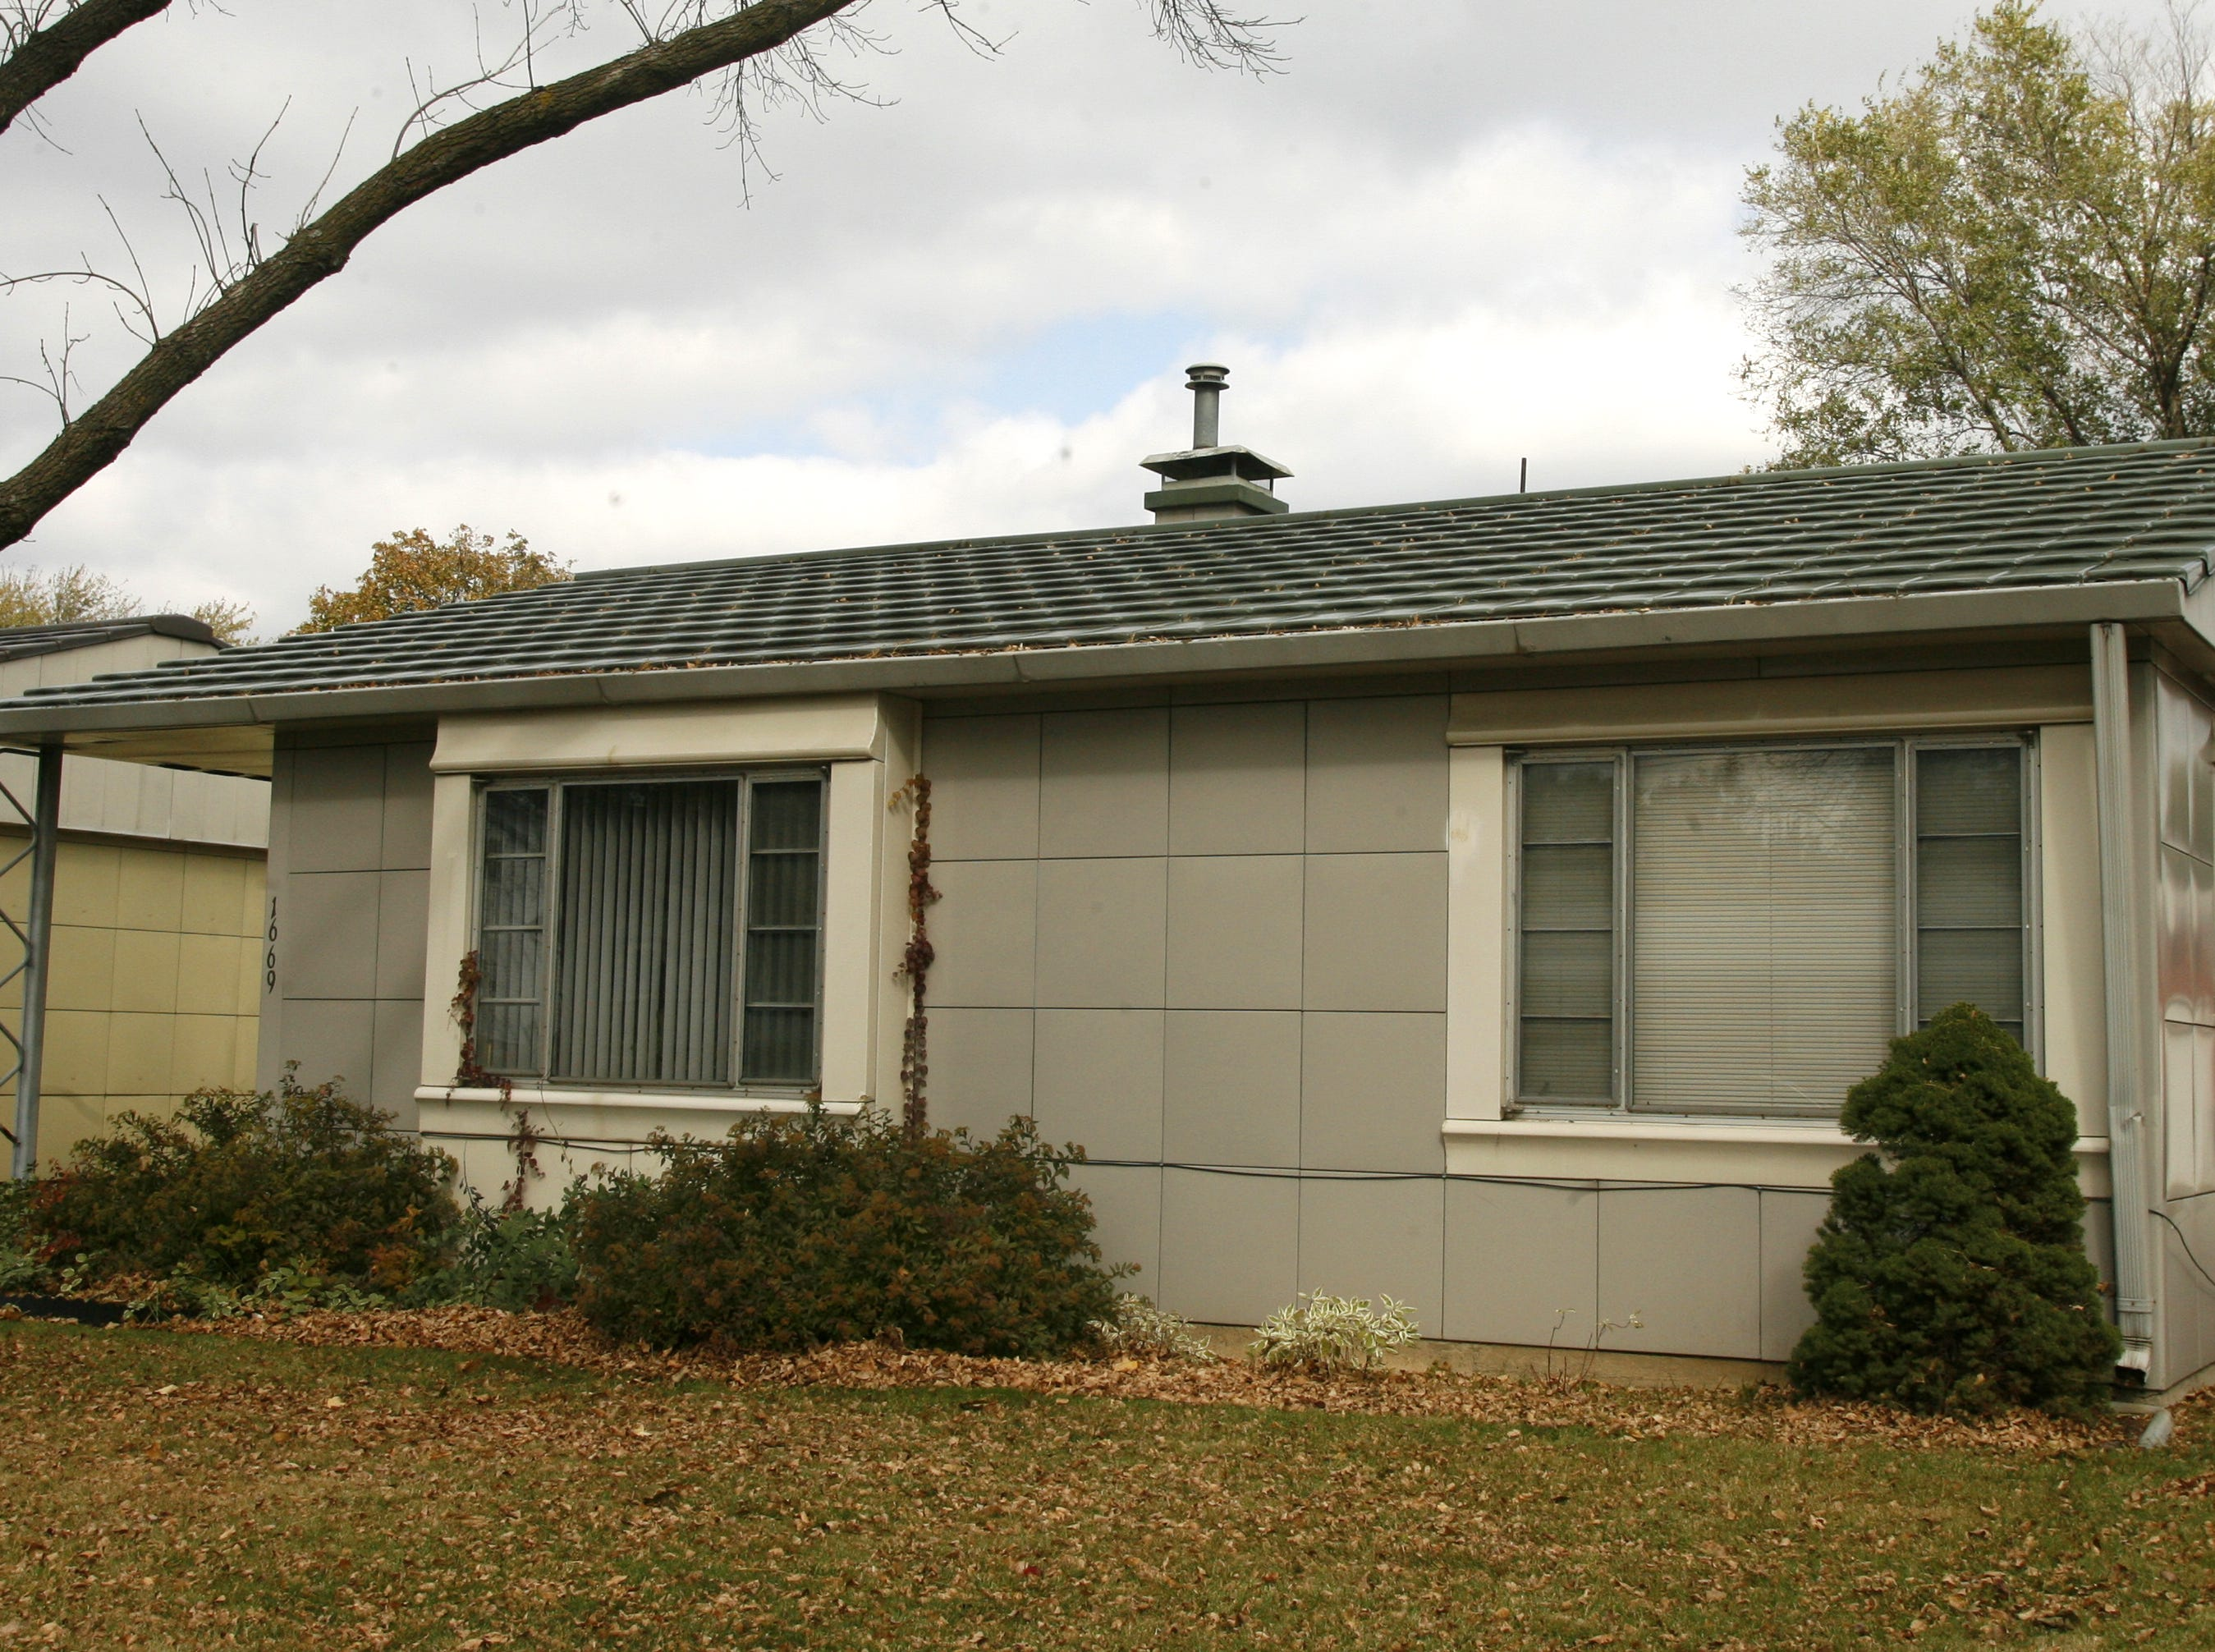 Alex Brown's Lustron home in Des Moines from 2006. The Ohio company made the steel and enamel homes shortly after World War II. There are 15 in the Des Moines area.